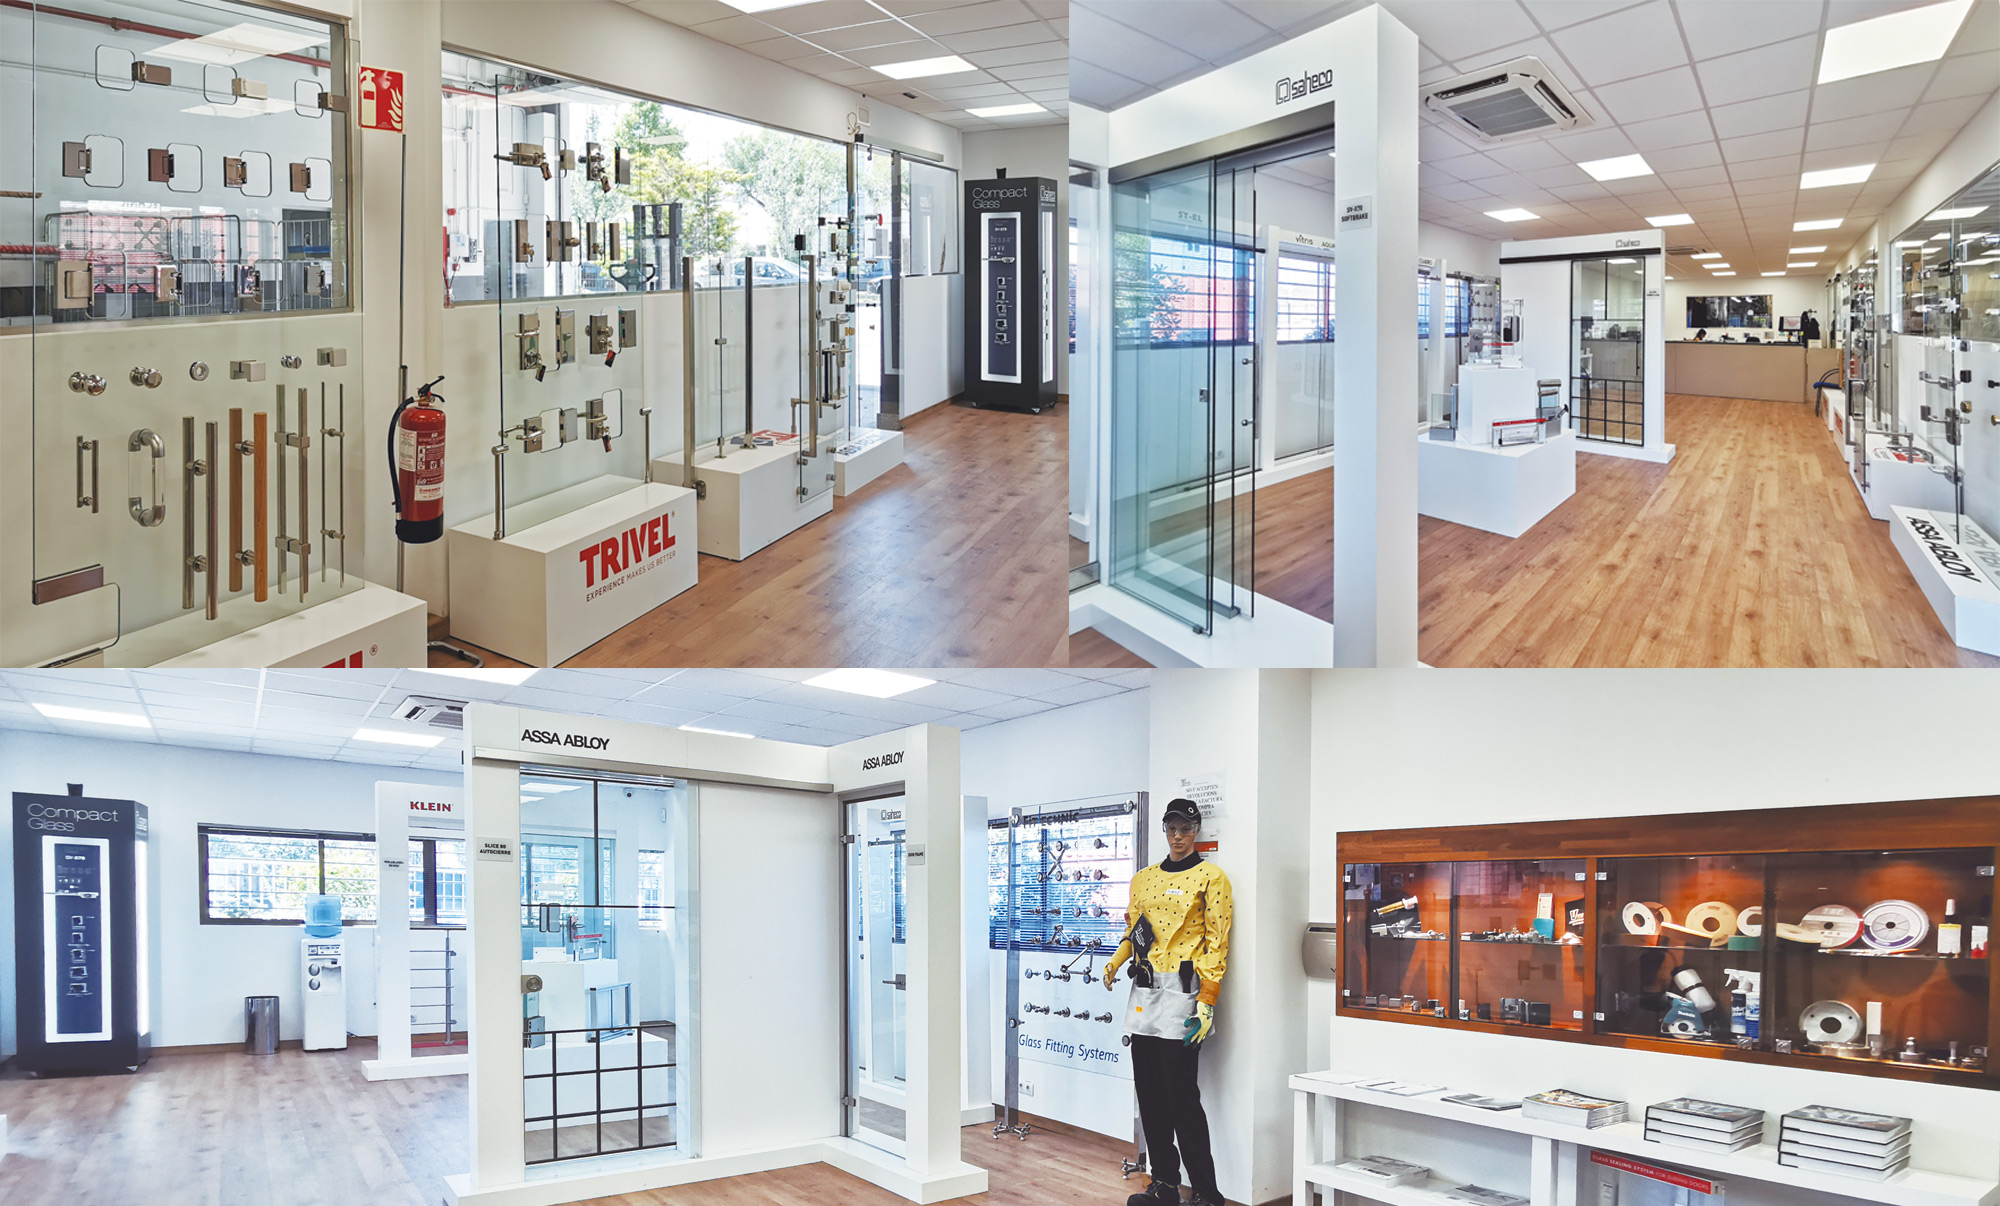 Vitrum's current showroom, with more than 120 m² to show the latest news and a wide selection of our products.